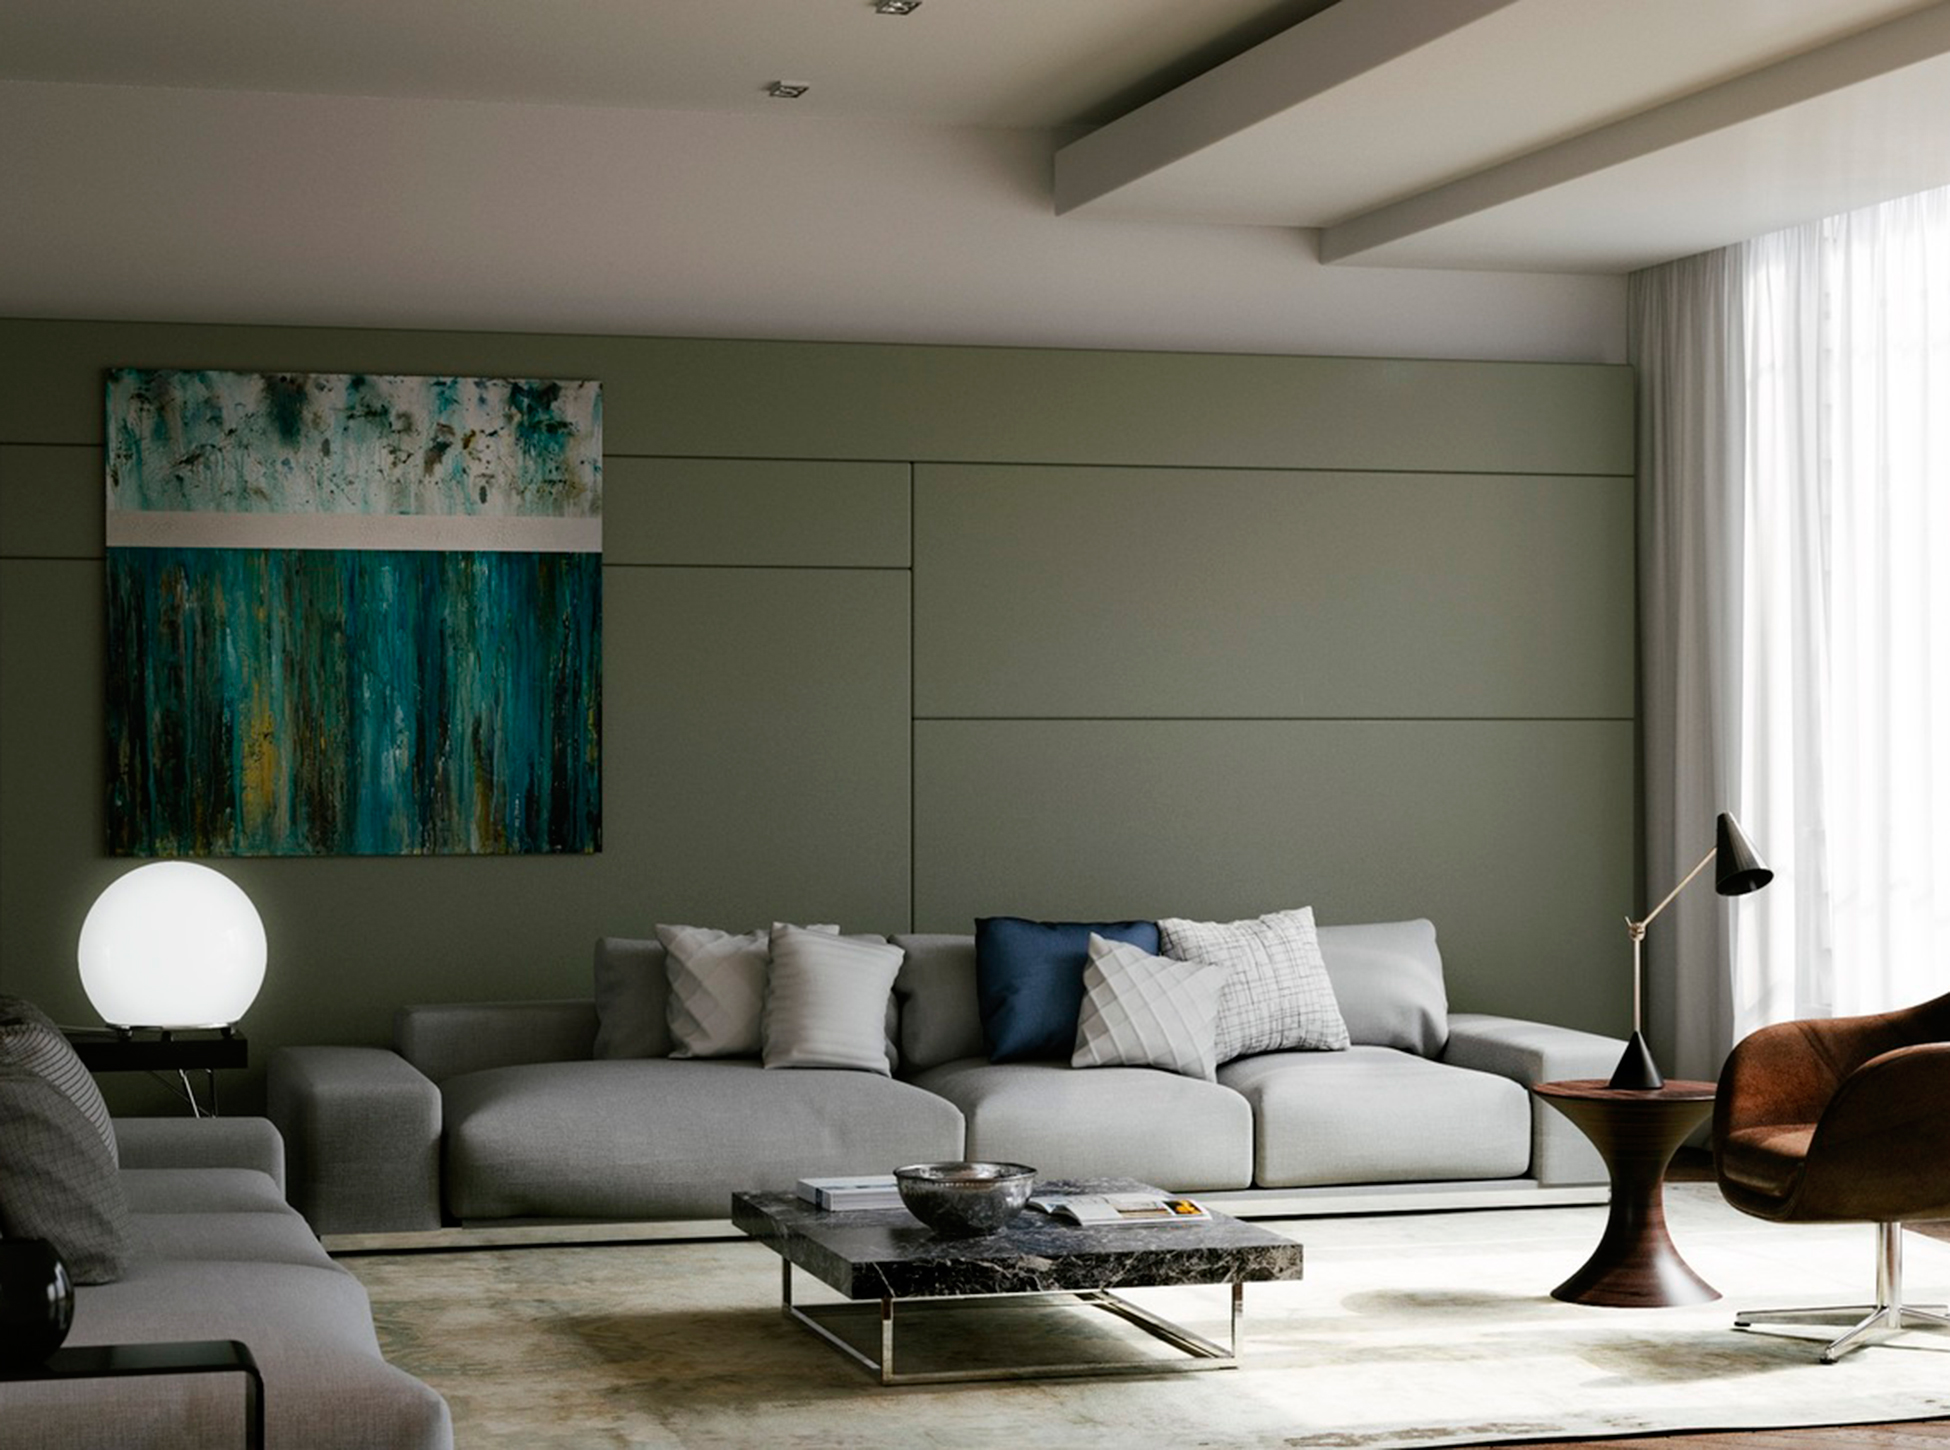 Large+room+with+Modern+light+&+painting.jpg